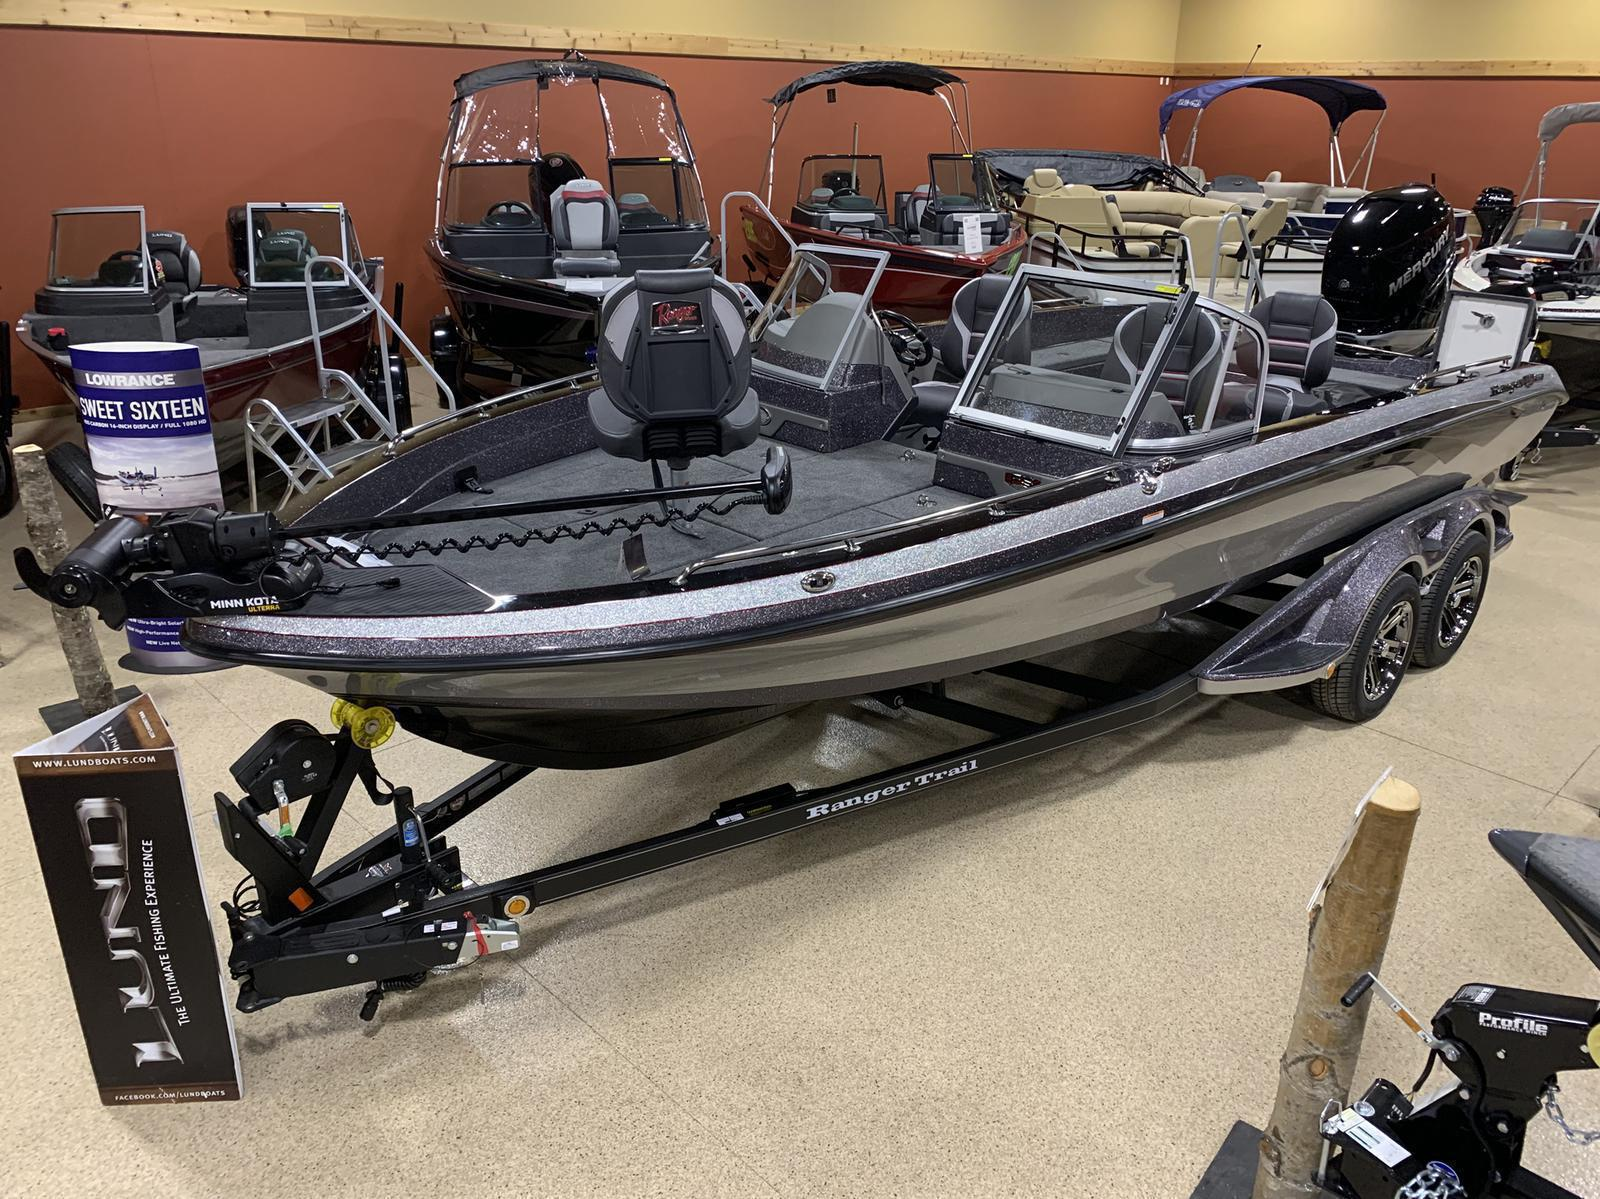 2019 Ranger 621 Fs For Sale In Brainerd Mn Power Lodge G 2 Yamaha Engine Wiring Harness Previous